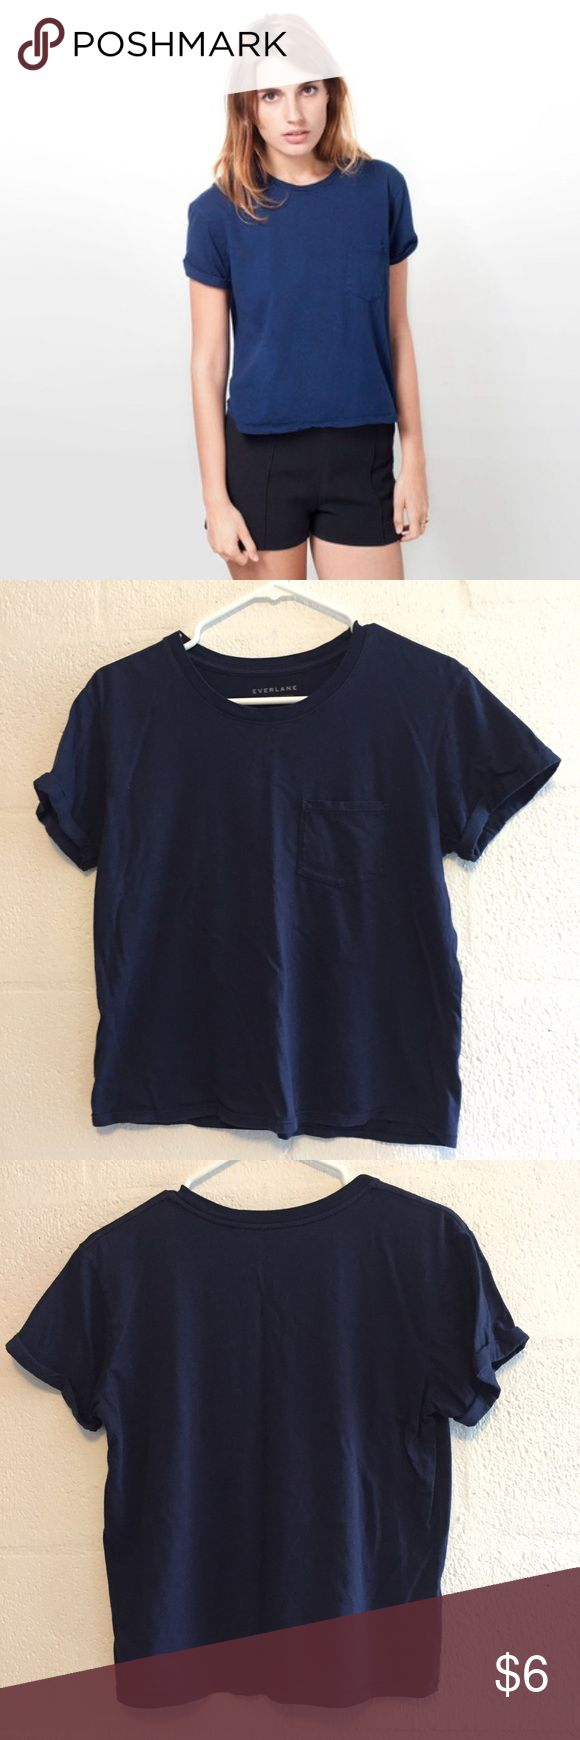 Everlane Box Cut Pocket Tee Sz S Everlane navy blue box cut pocket tee, size small. In good condition, but a little bit of fading. Super soft supima cotton, chest pocket, and sewn cuffed sleeves. Made in the USA. I love this but it doesn't suit my body type because it's a little bit cropped/boxy. First picture is a stock photo to show the fit. Everlane Tops Tees - Short Sleeve